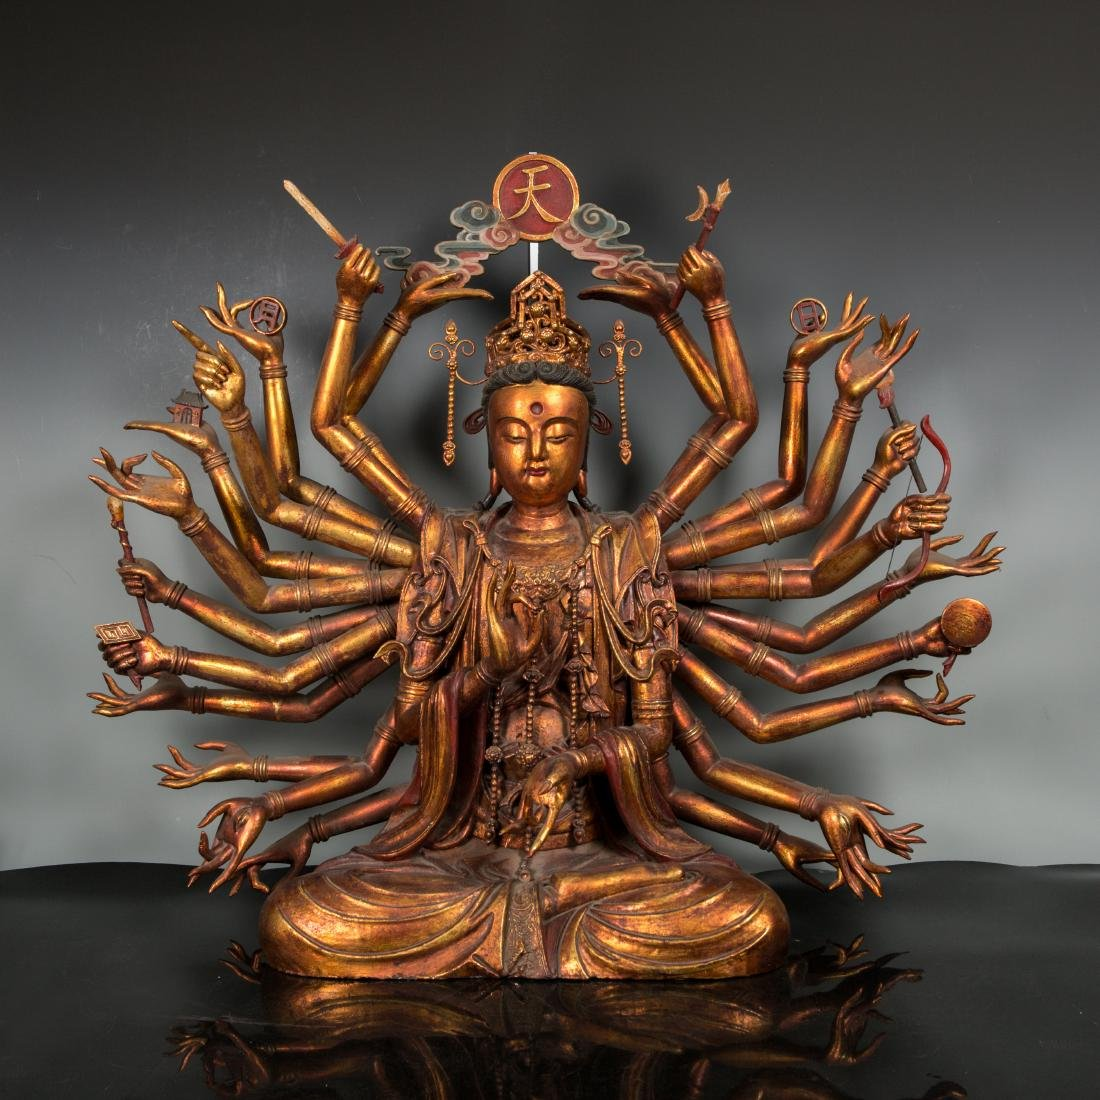 A Rare Large Gilt Lacquer Wood Figure of Avalokitesvara